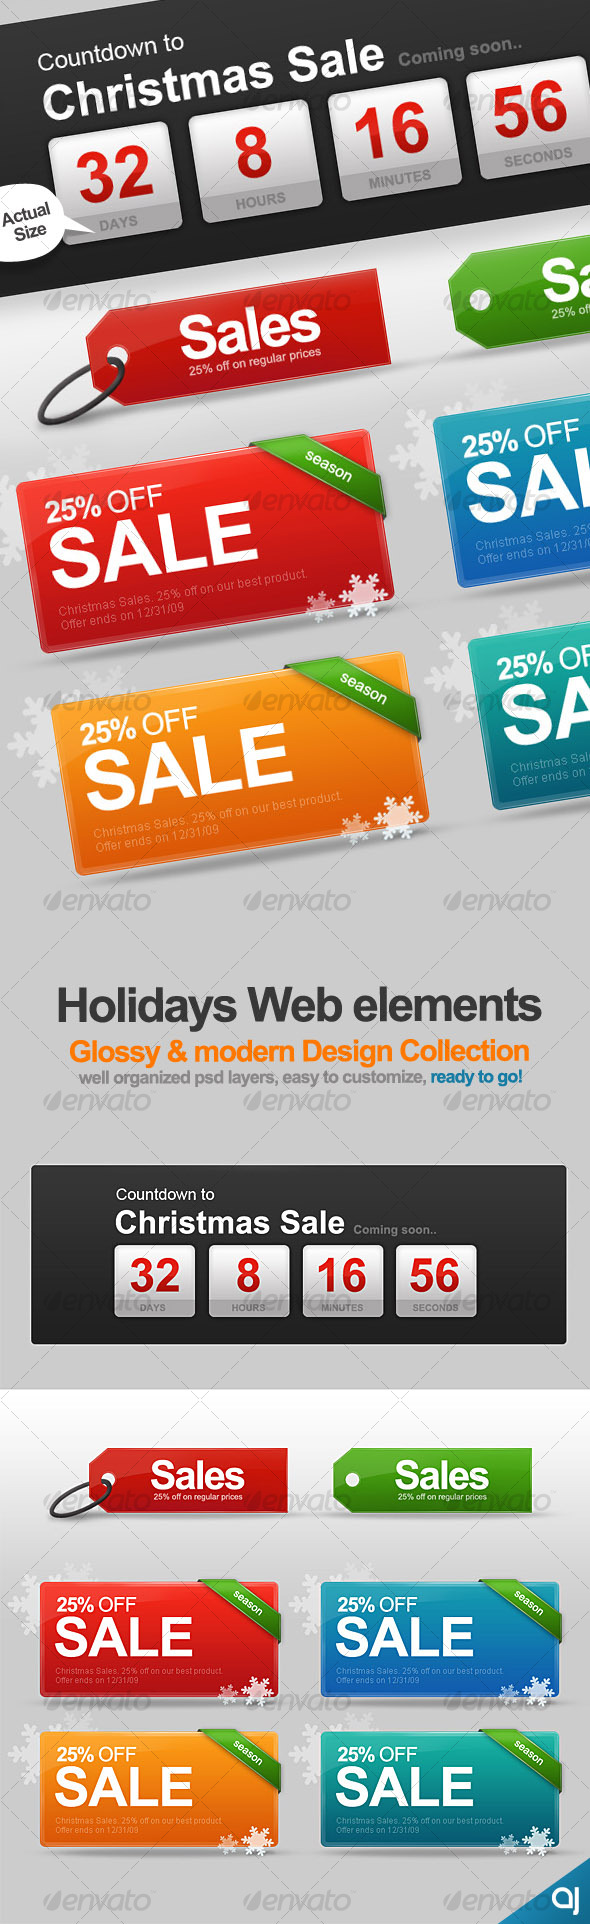 Holiday Web Elements collection - Web Elements